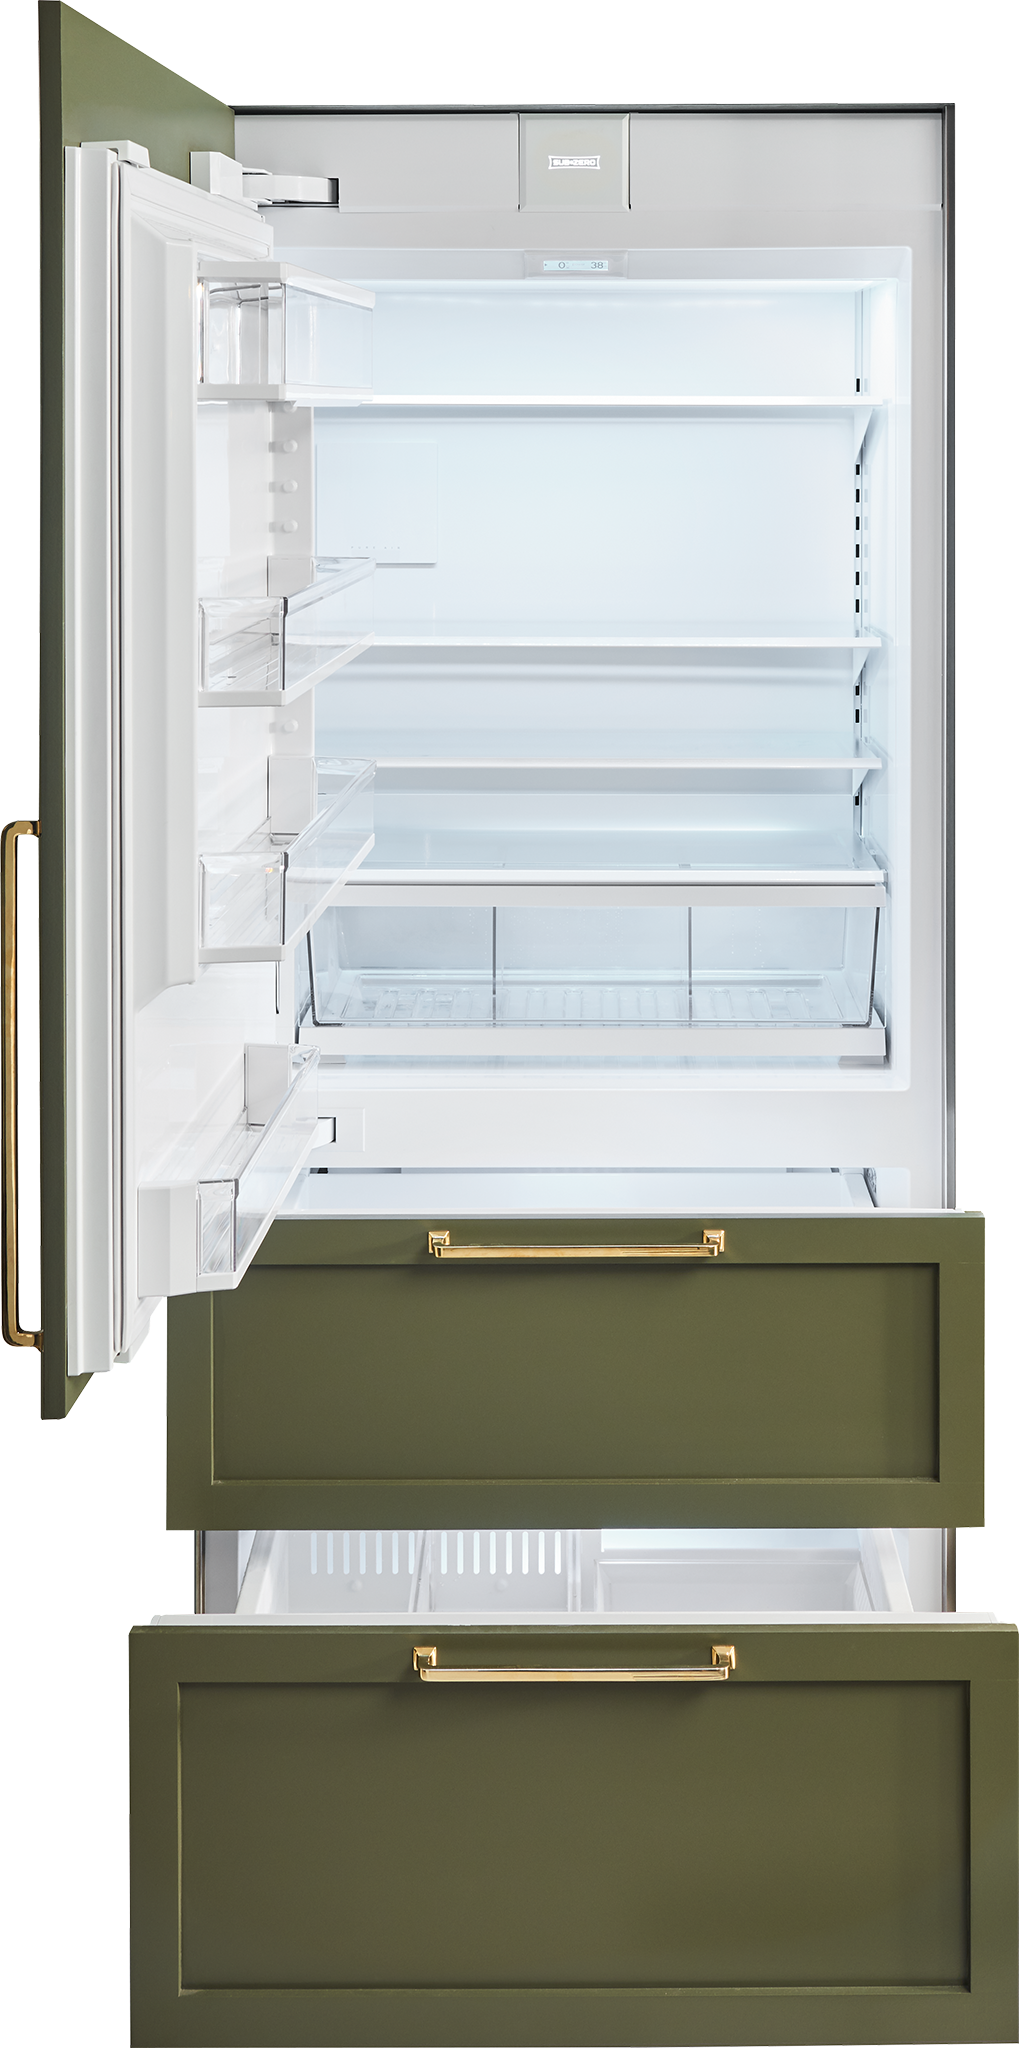 "Sub-Zero Refrigerators 36"" Designer Over-and-Under Refrigerator/Freezer with Internal Dispenser and Ice Maker - Panel Ready (IT-36CIID)"